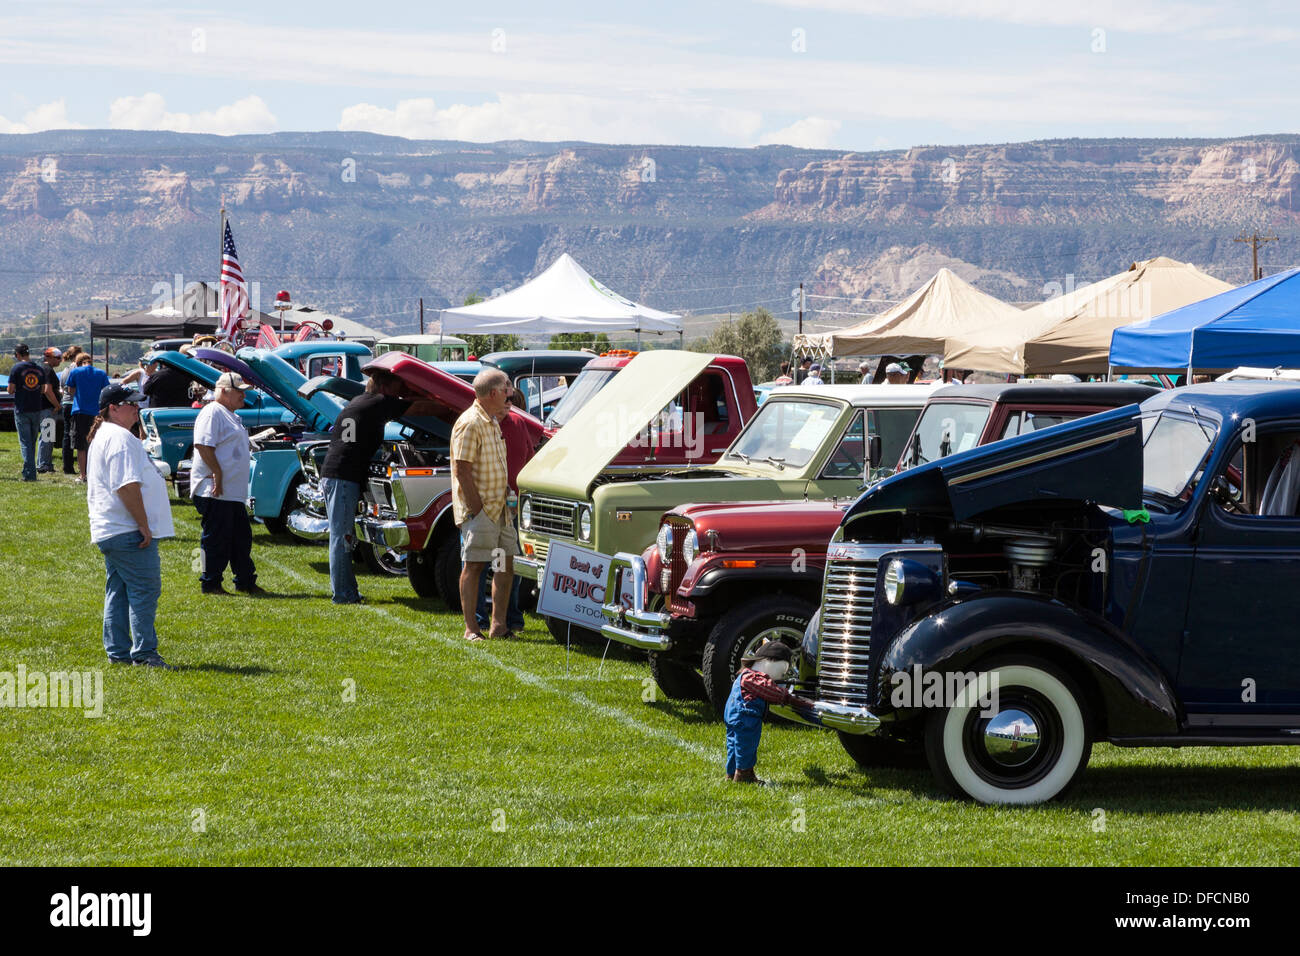 Spectators at a Classic Car show near Grand Junction, Colorado looking at a customised and collectable automobiles. USA - Stock Image